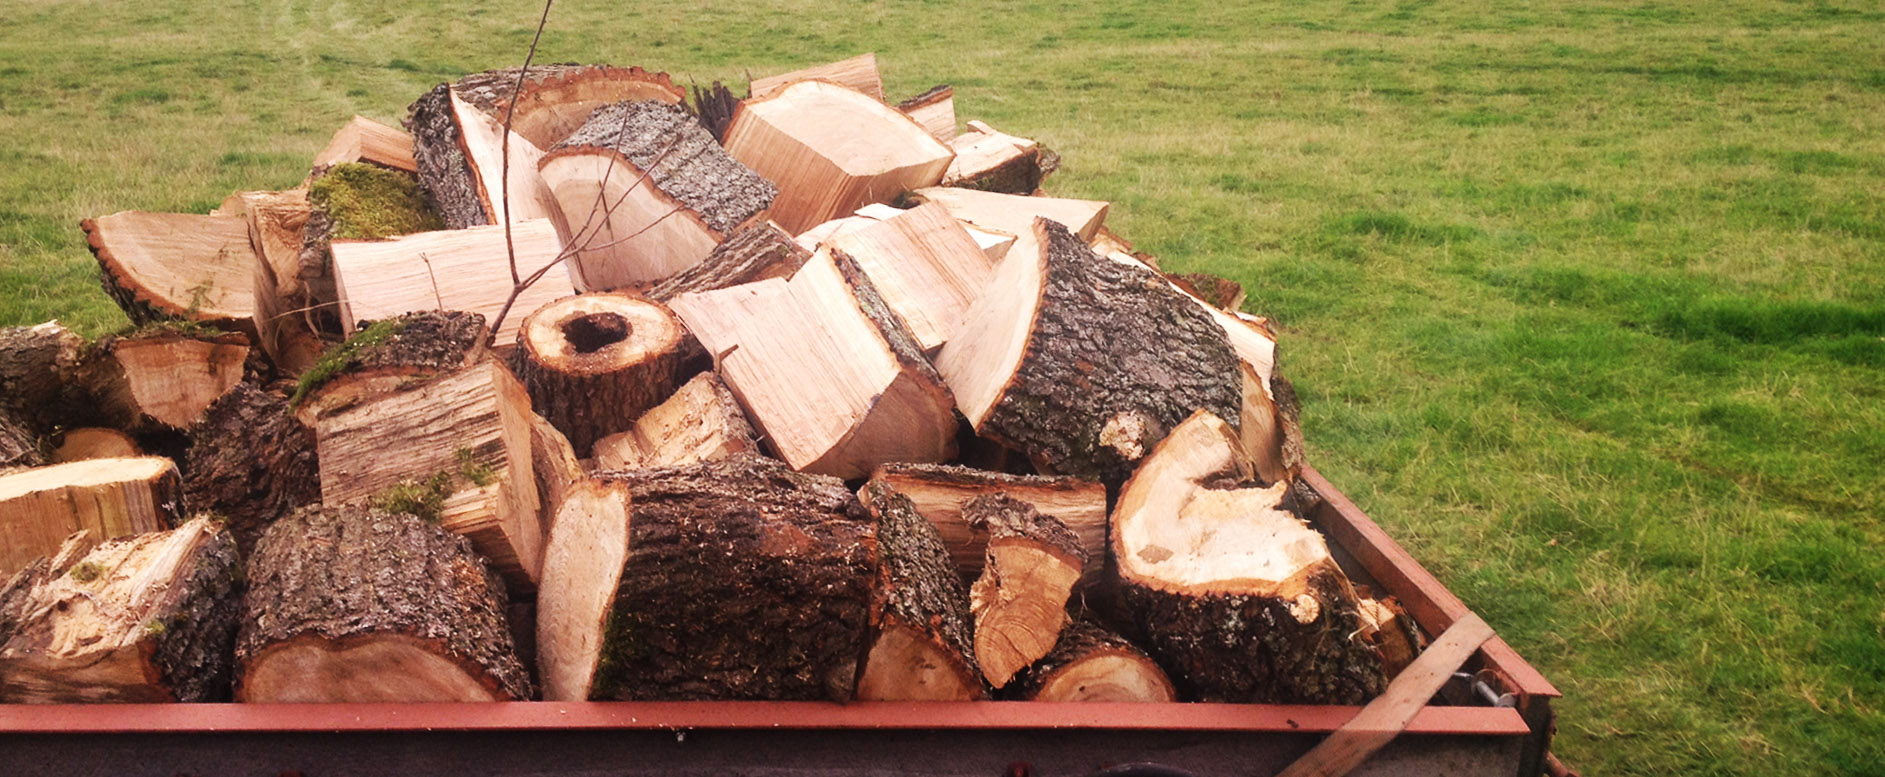 Sustainably sourced hardwood firewood, Kentchurch Estate, Herefordshire.